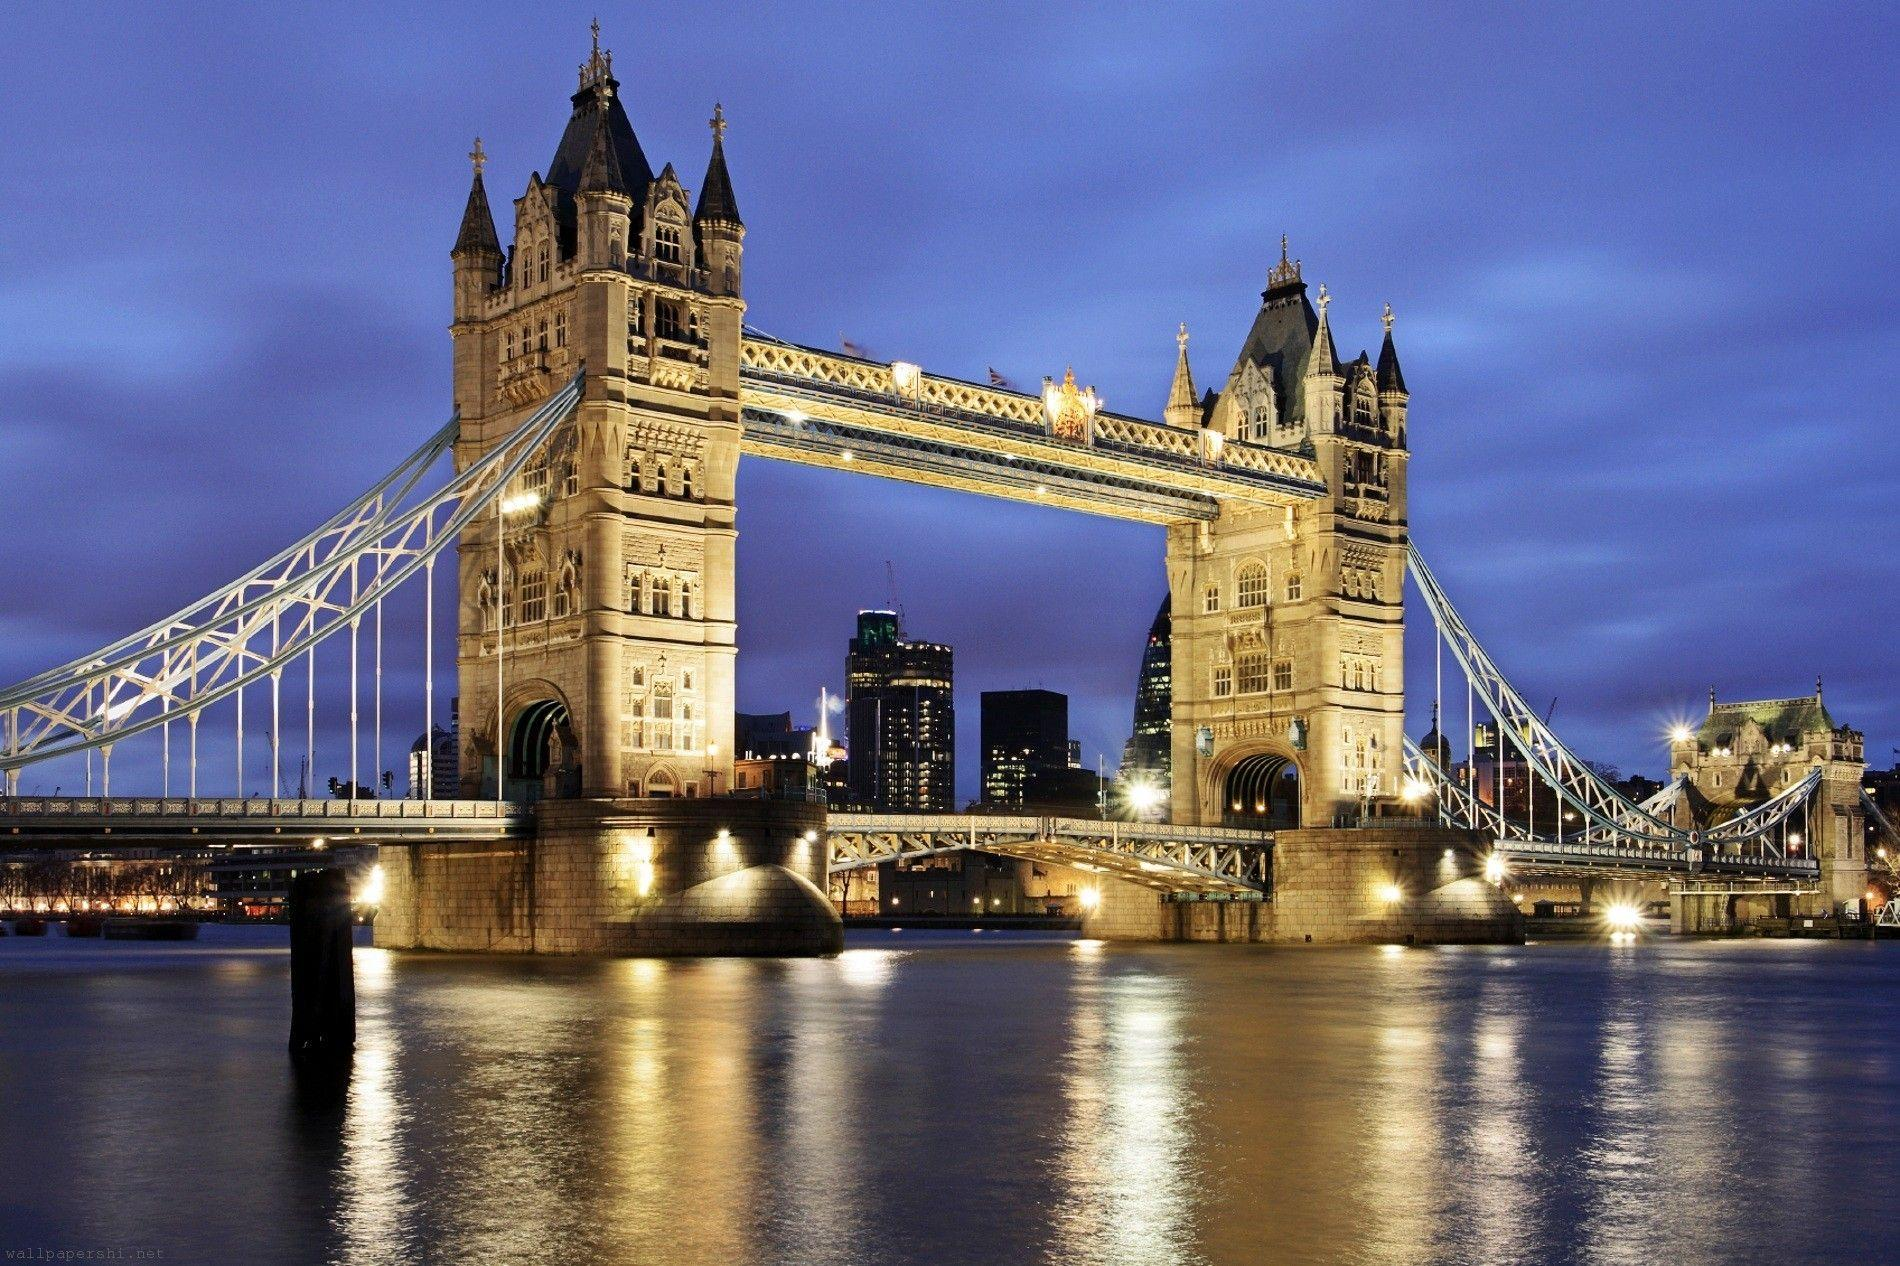 Wallpaper Blink - Tower Bridge Wallpaper HD 23 - 1900 X 1266 for ...